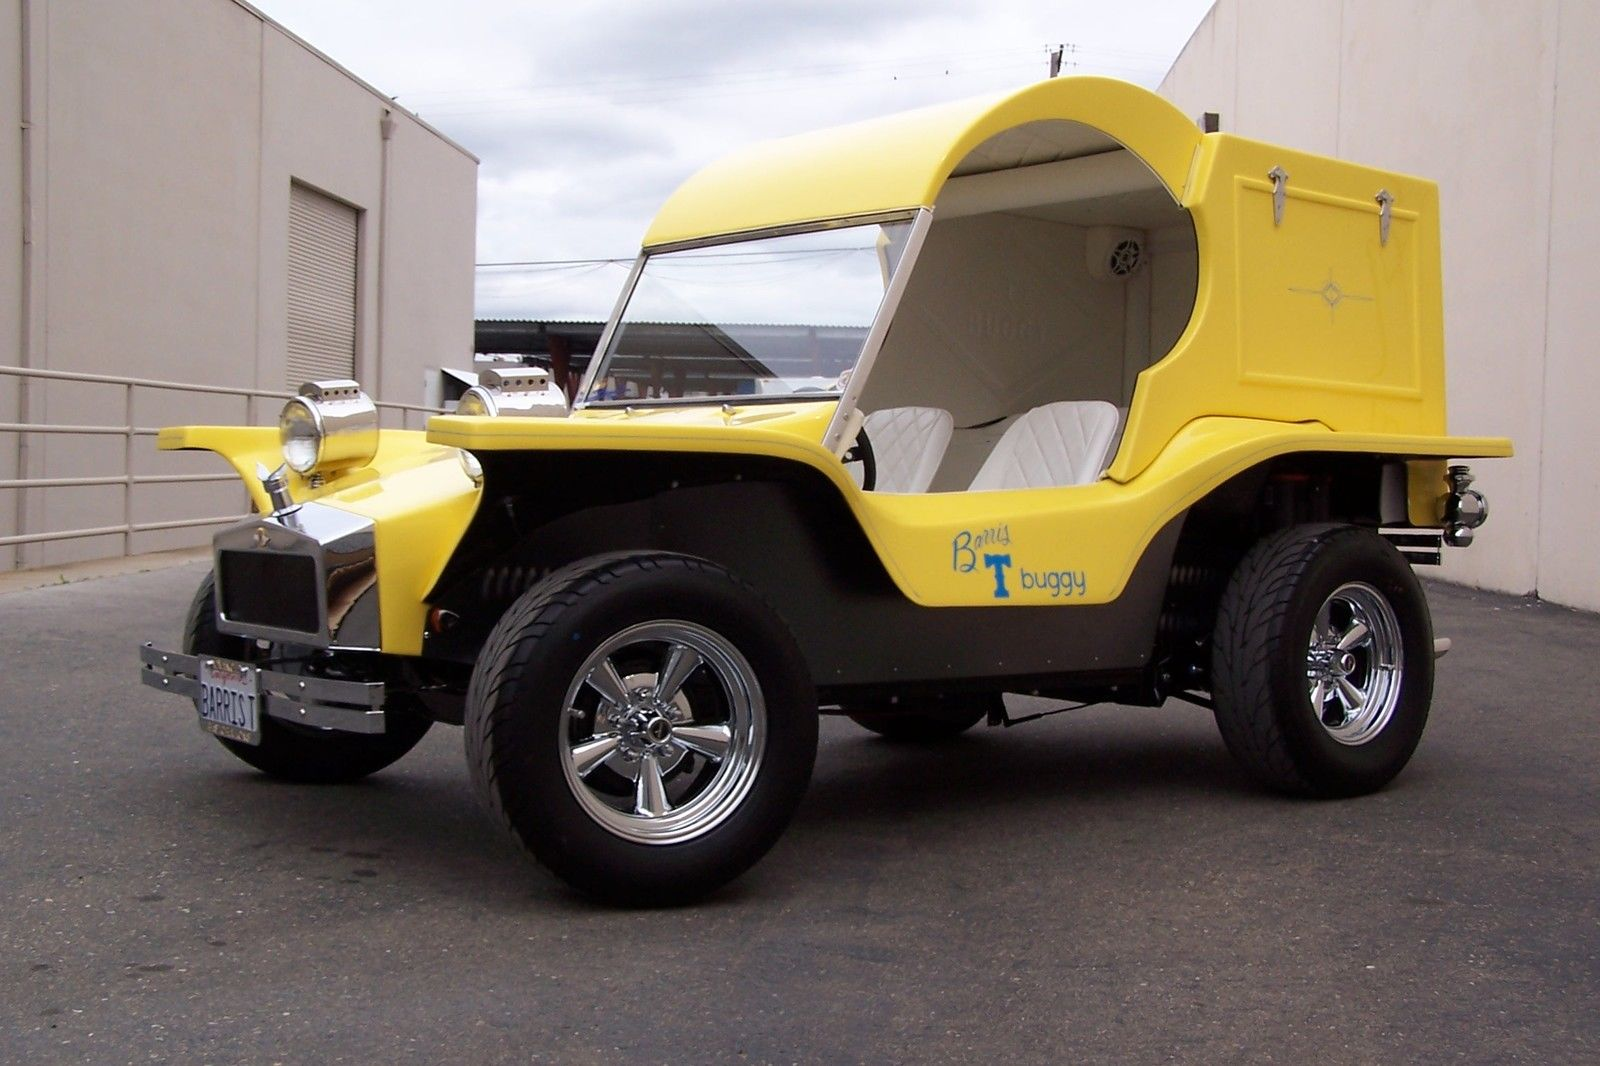 George Barris Personal Dune Buggy Is For Sale Autoevolution